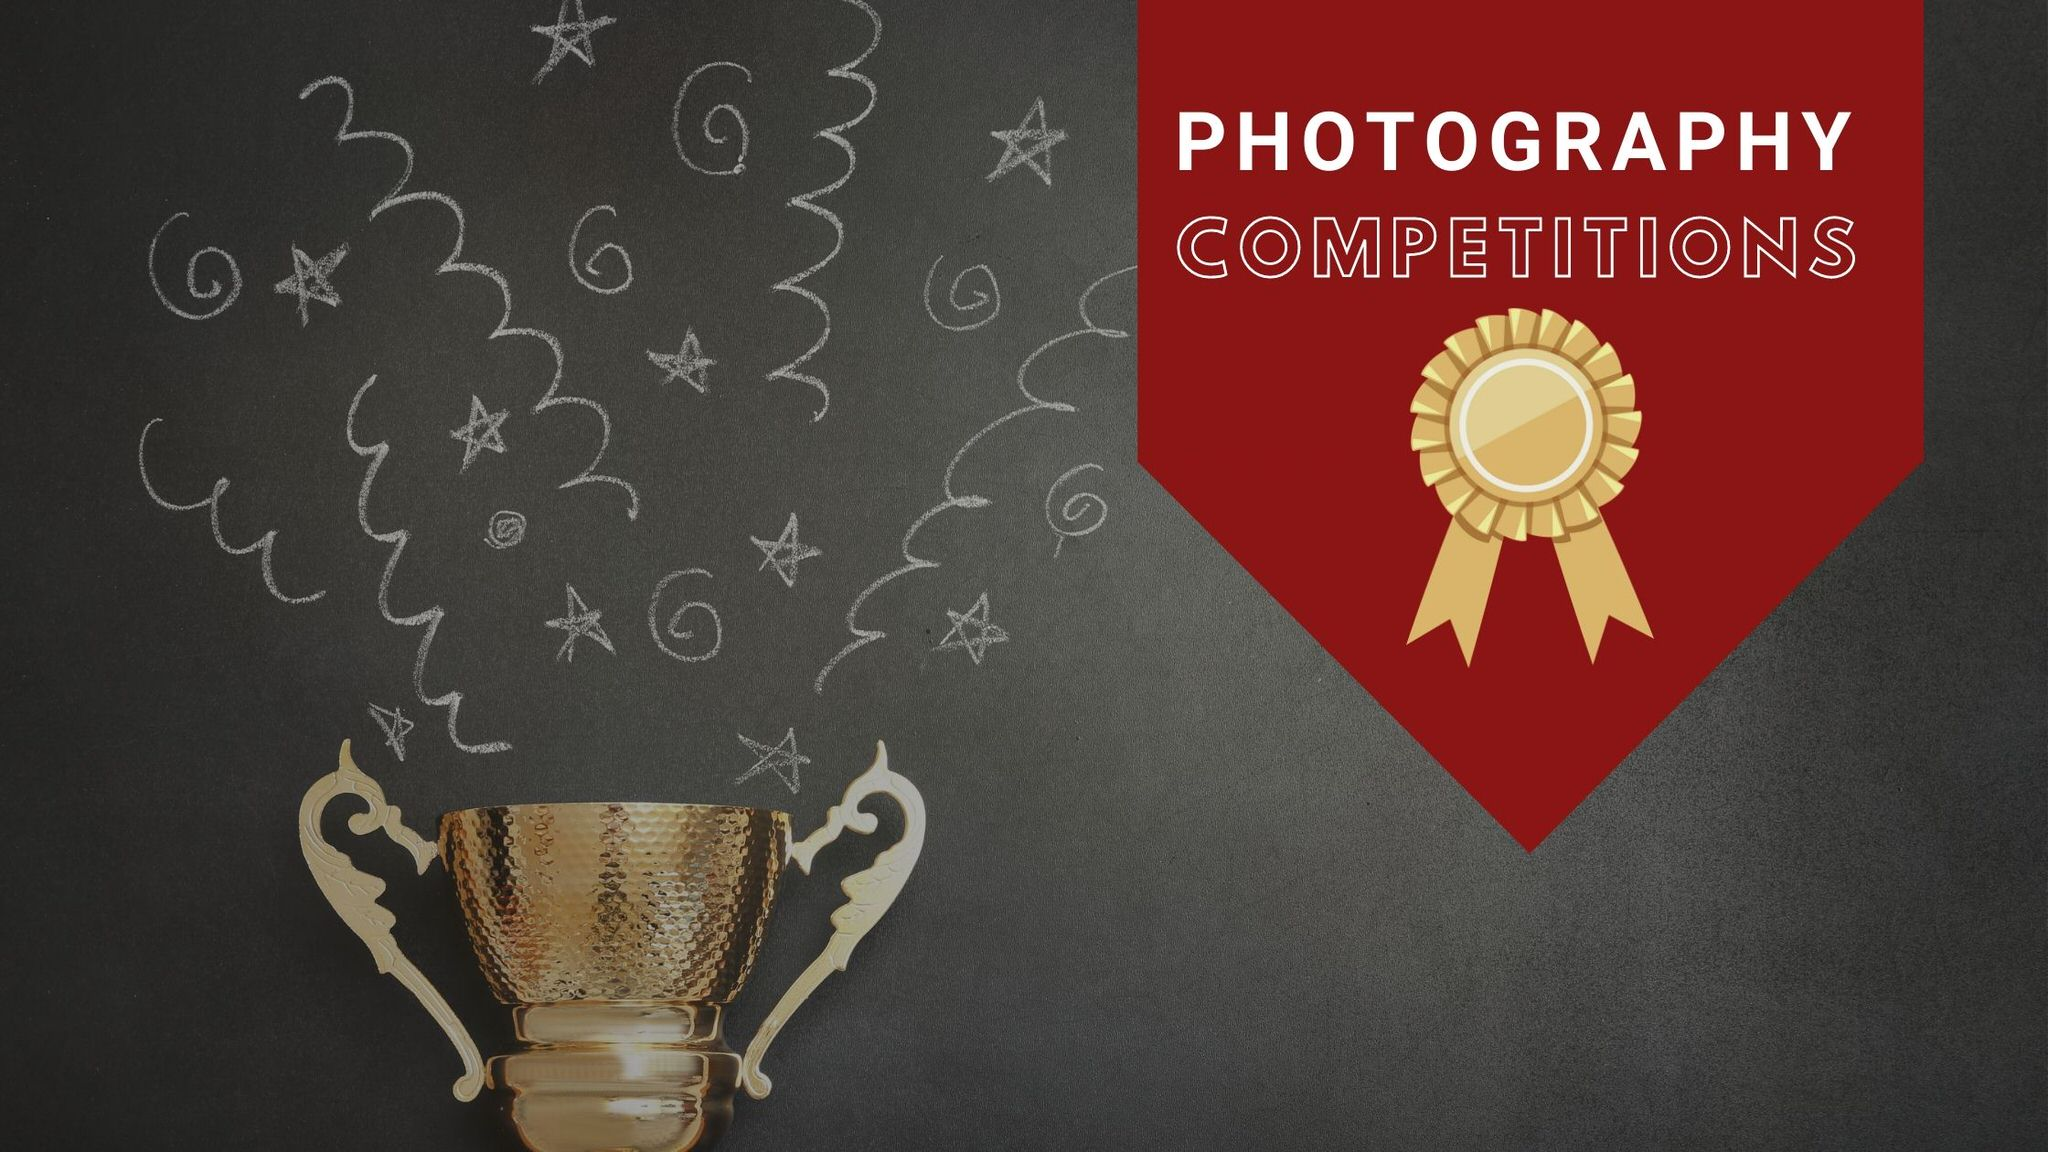 trophy and award banner graphic as main image for blog post about photography competitions